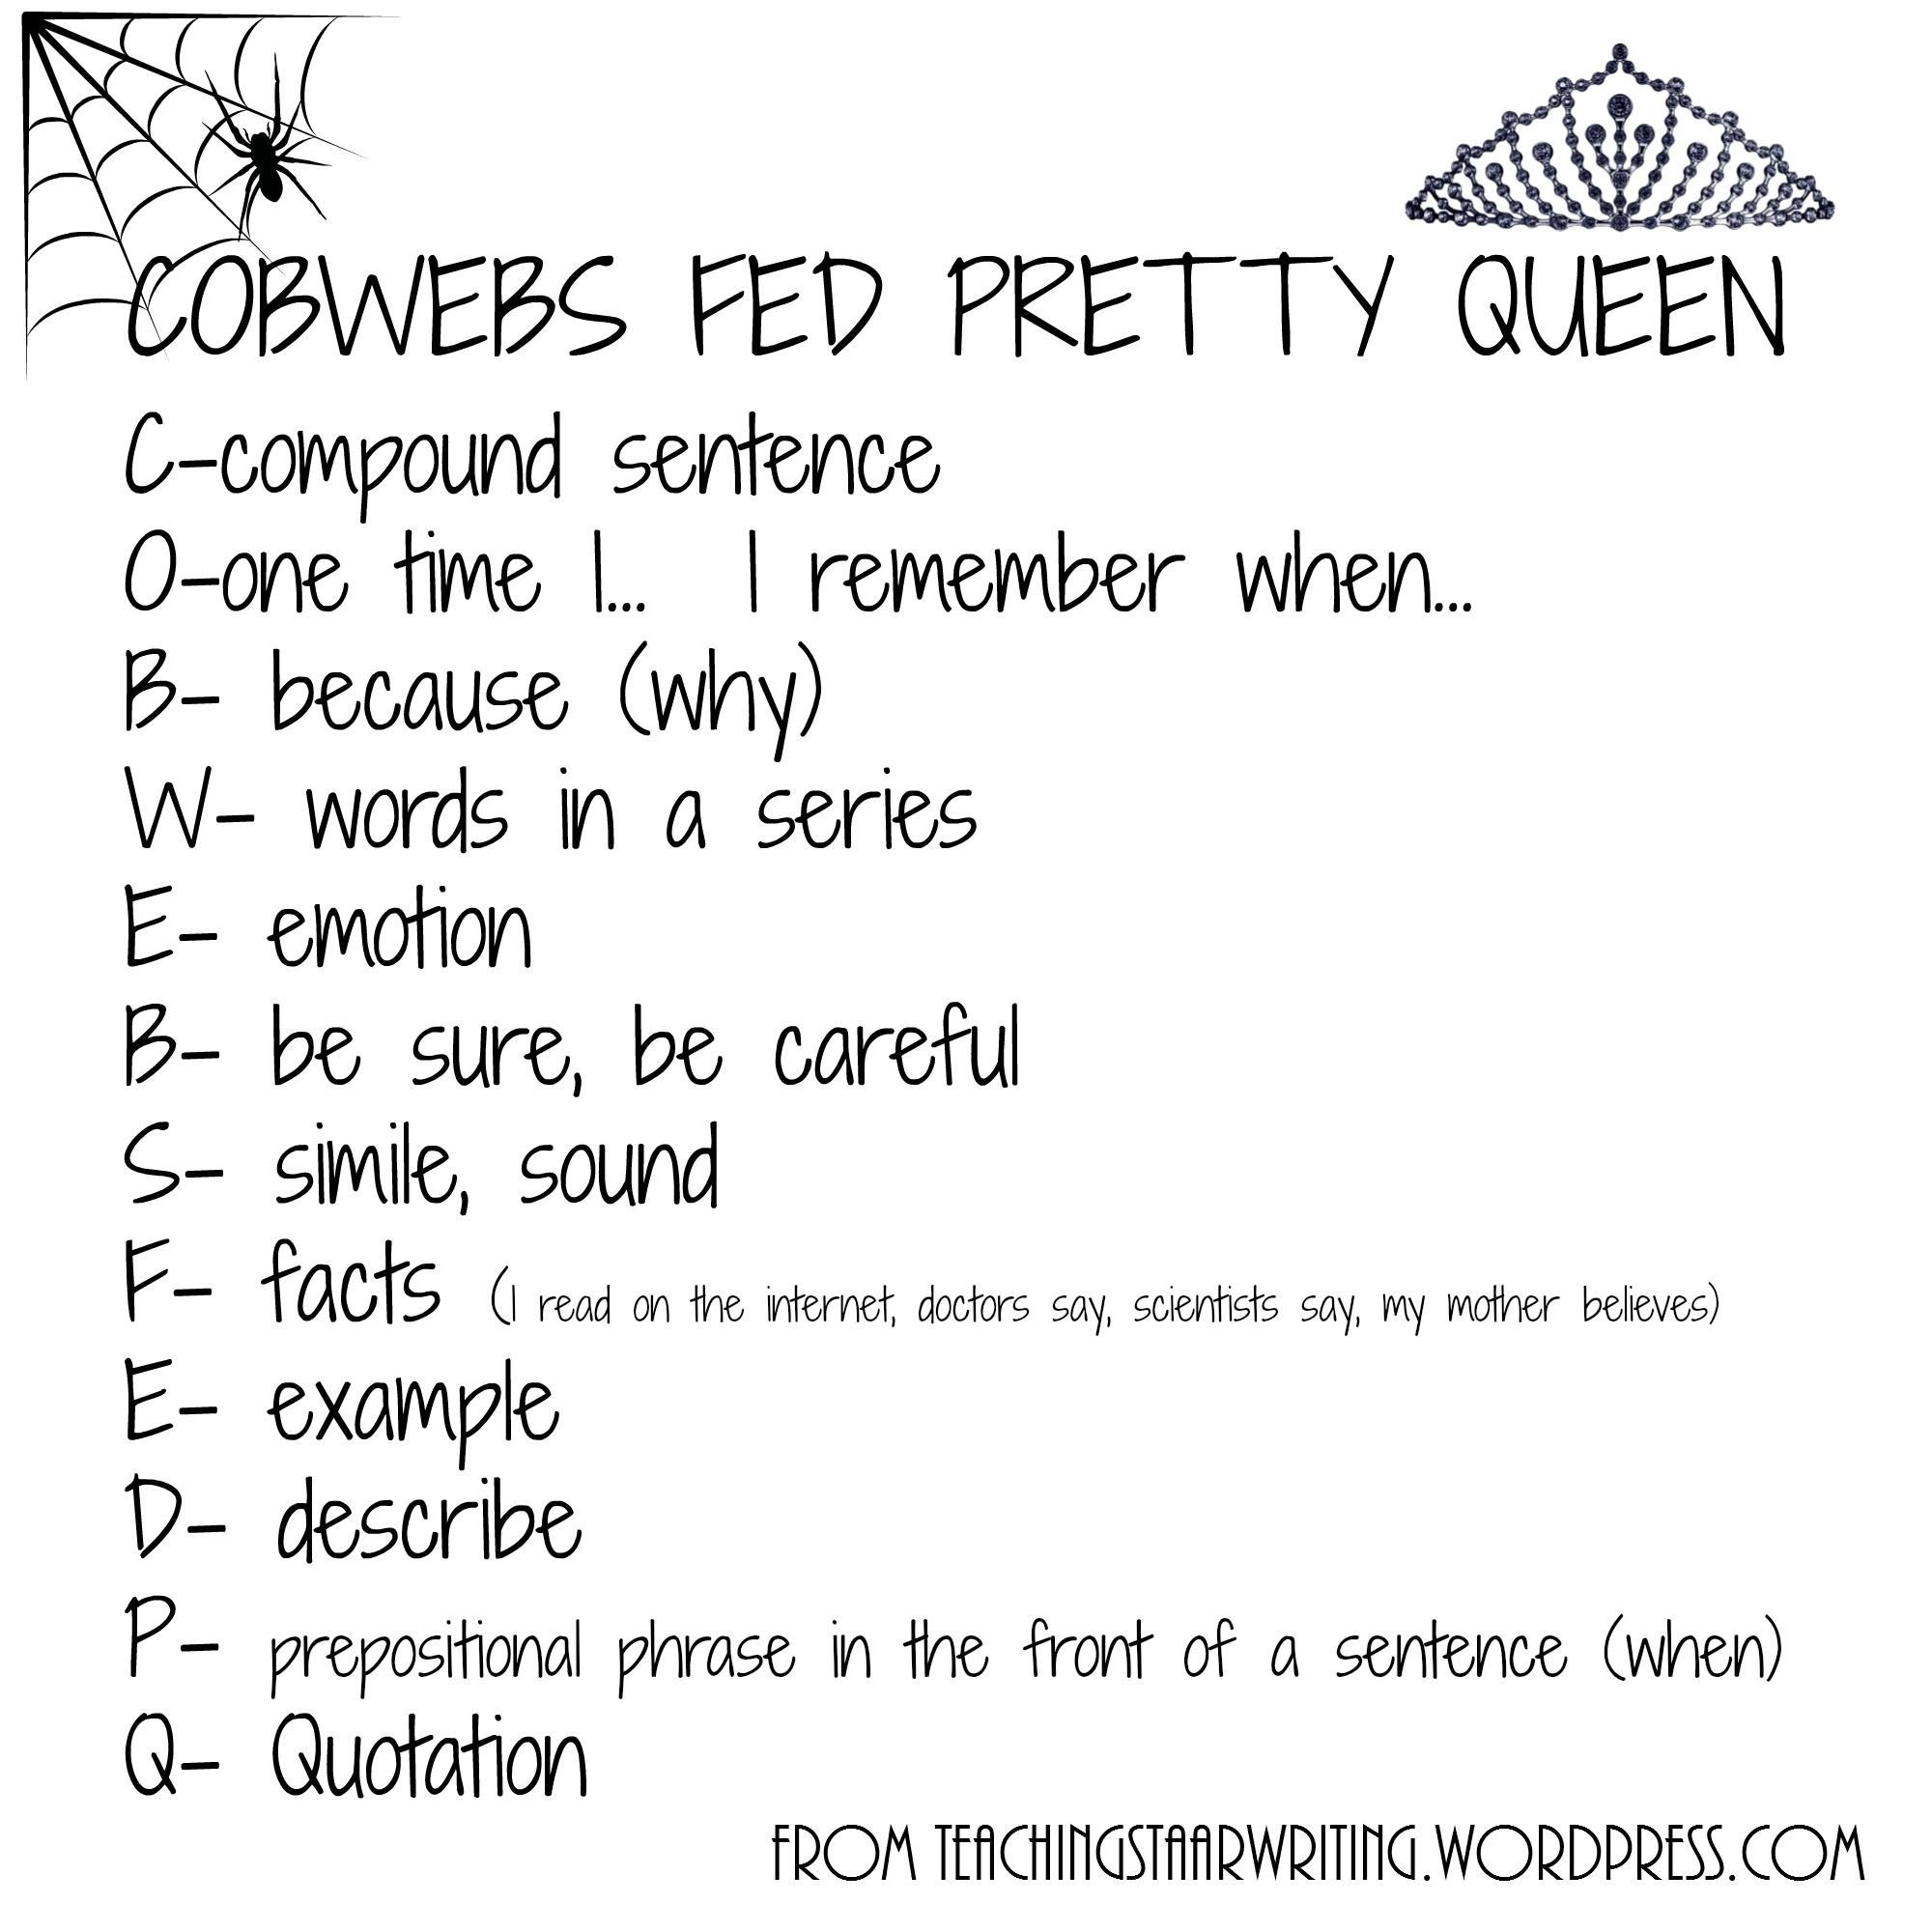 10 Best Writing Ideas For 4Th Grade expository checklist cobwebs fed pretty queen writing ideas 2020